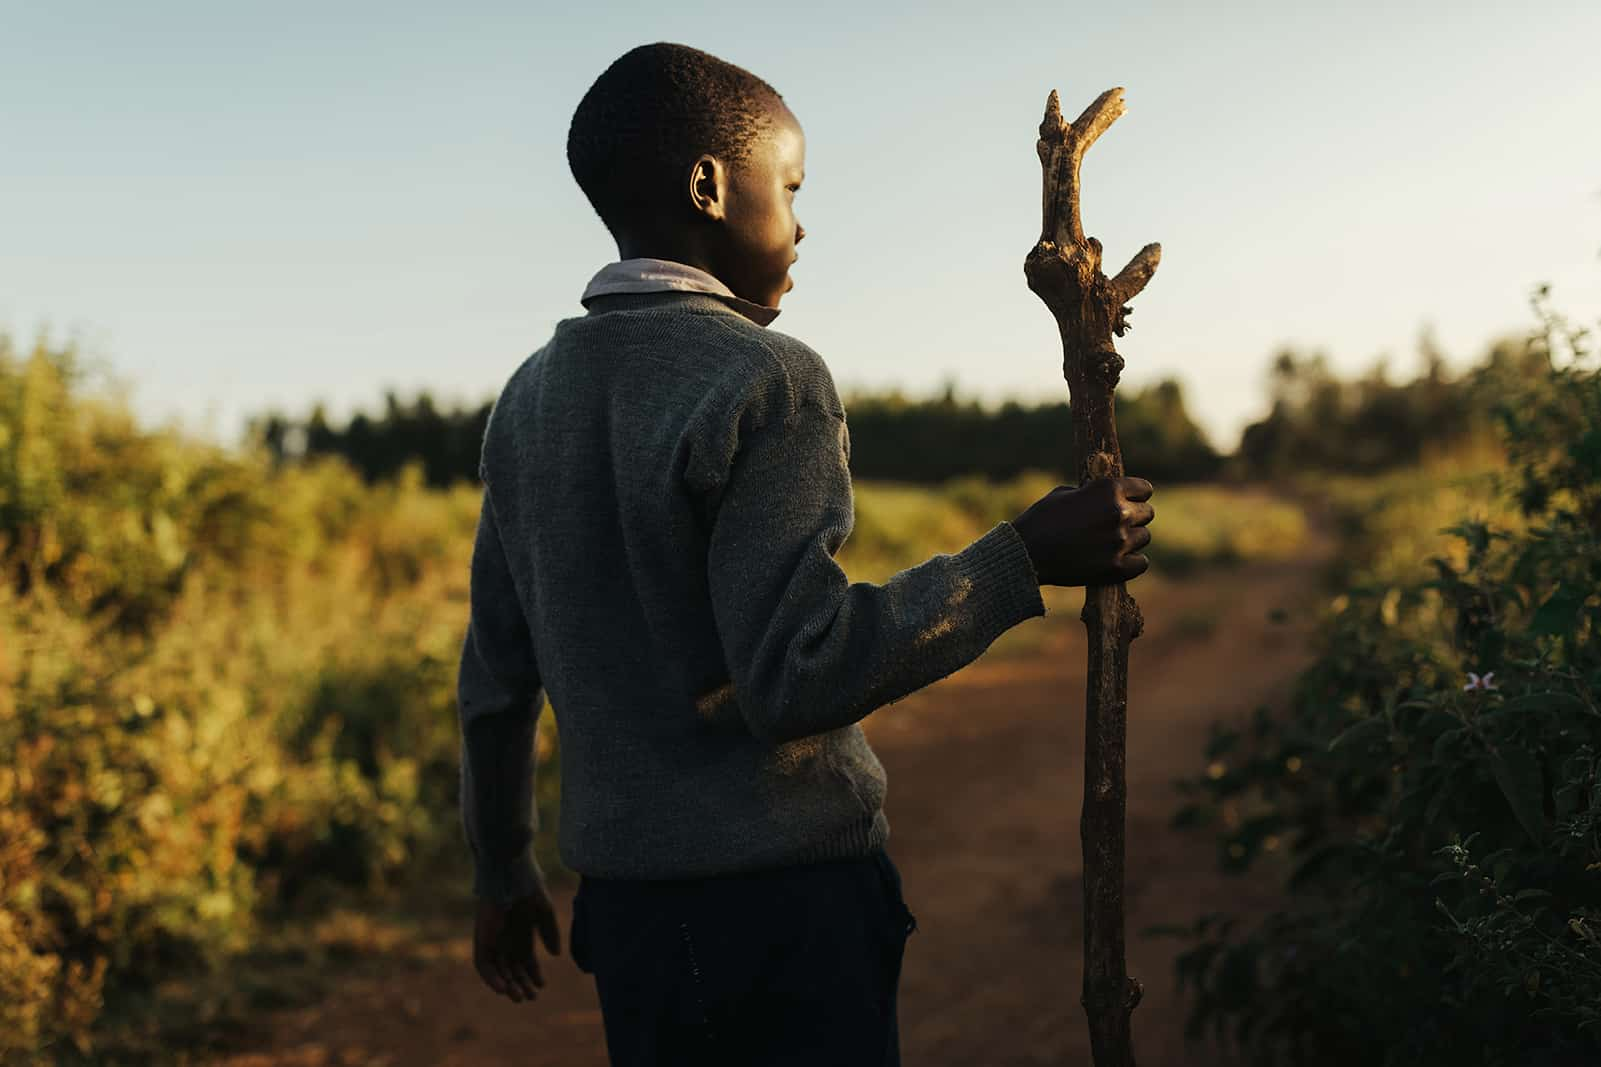 Kenyan boy walking a path with a walking stick